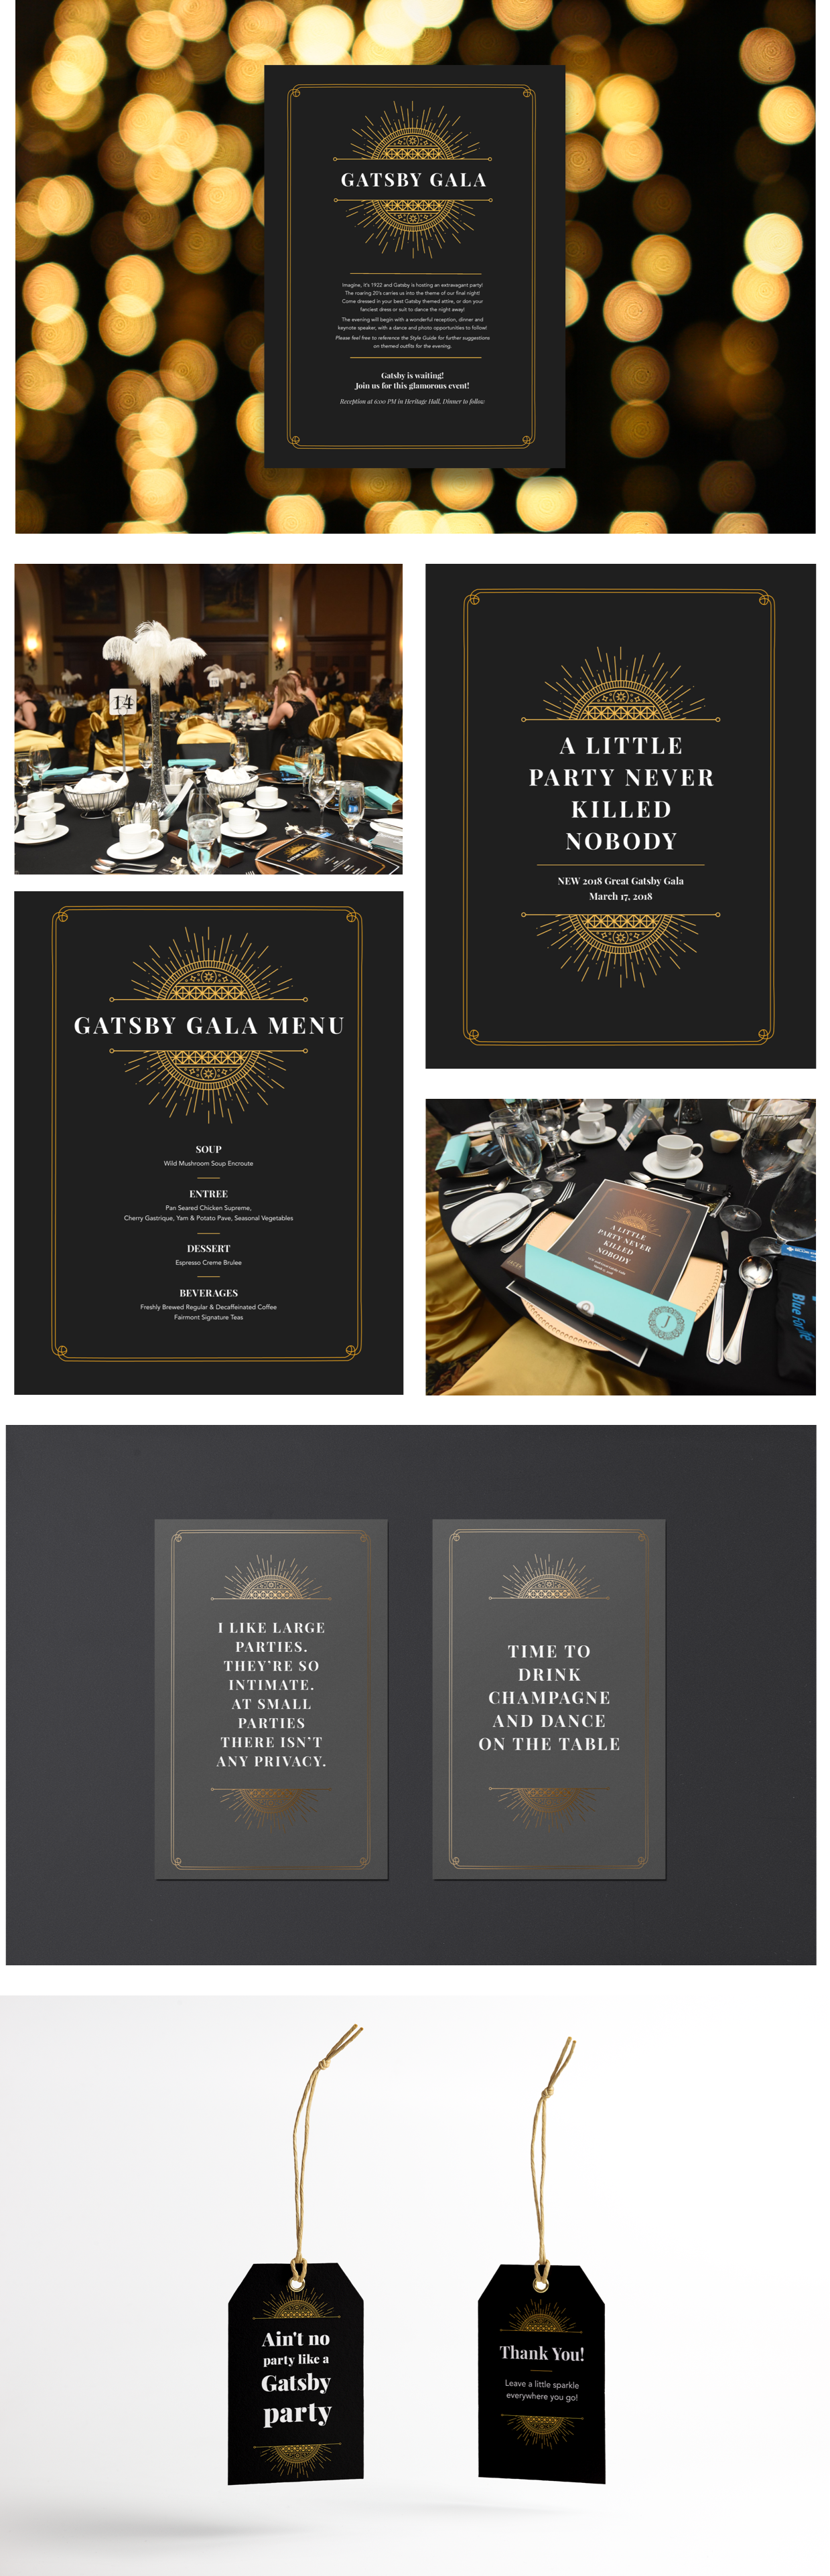 Gatsby_Assets.png